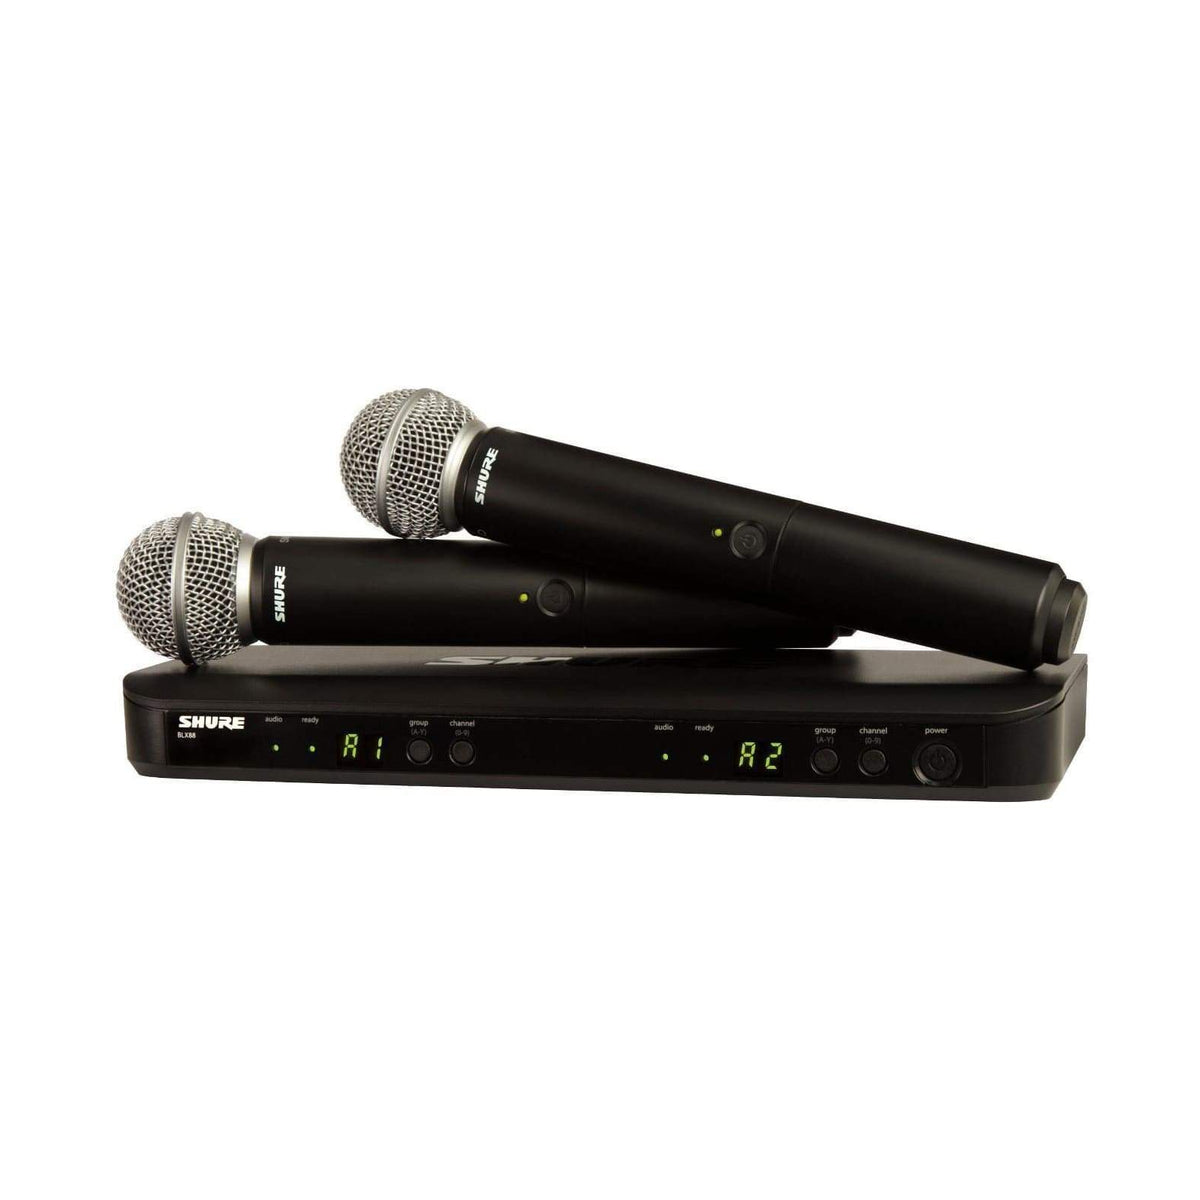 Shure Wireless Microphone Shure BBLX288UK/SM58X-K14 Wireless Microphone System